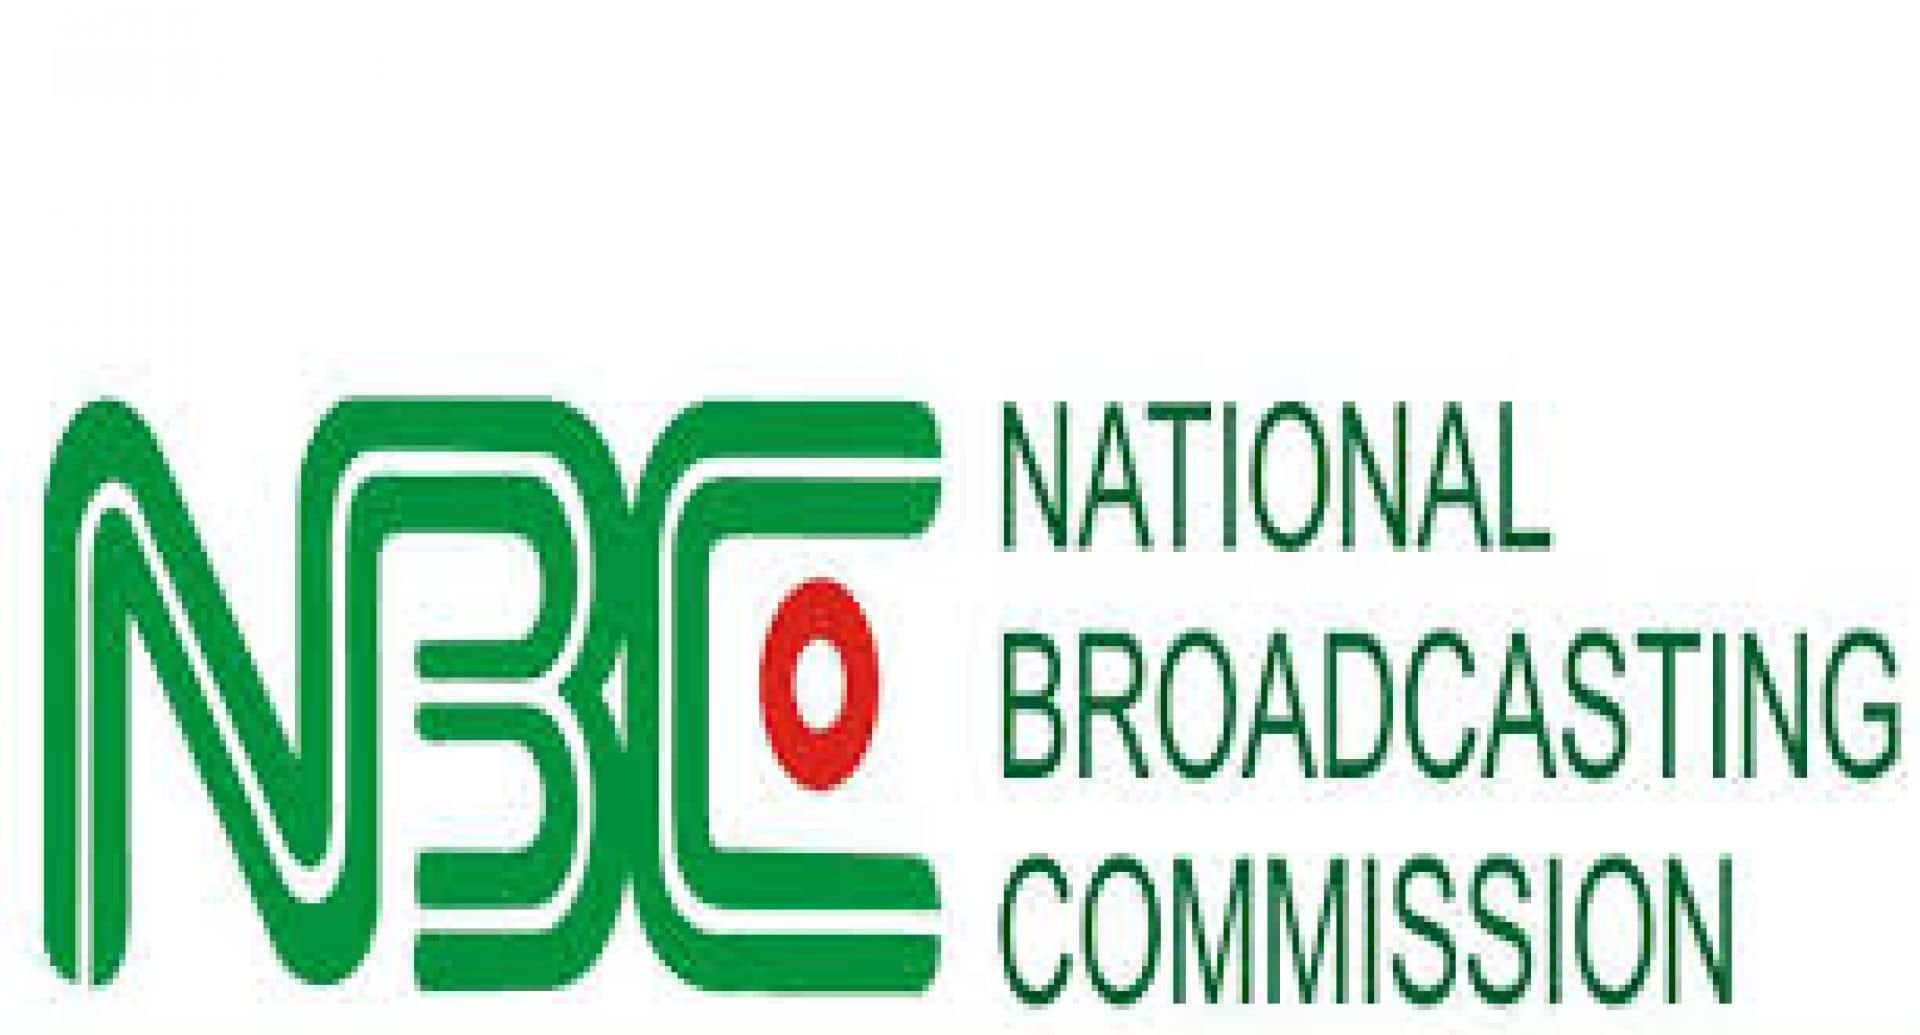 Nigeria news : Lekki shooting: Fine on AIT, Arise, Channels over End SARS draconian – Group writes NBC